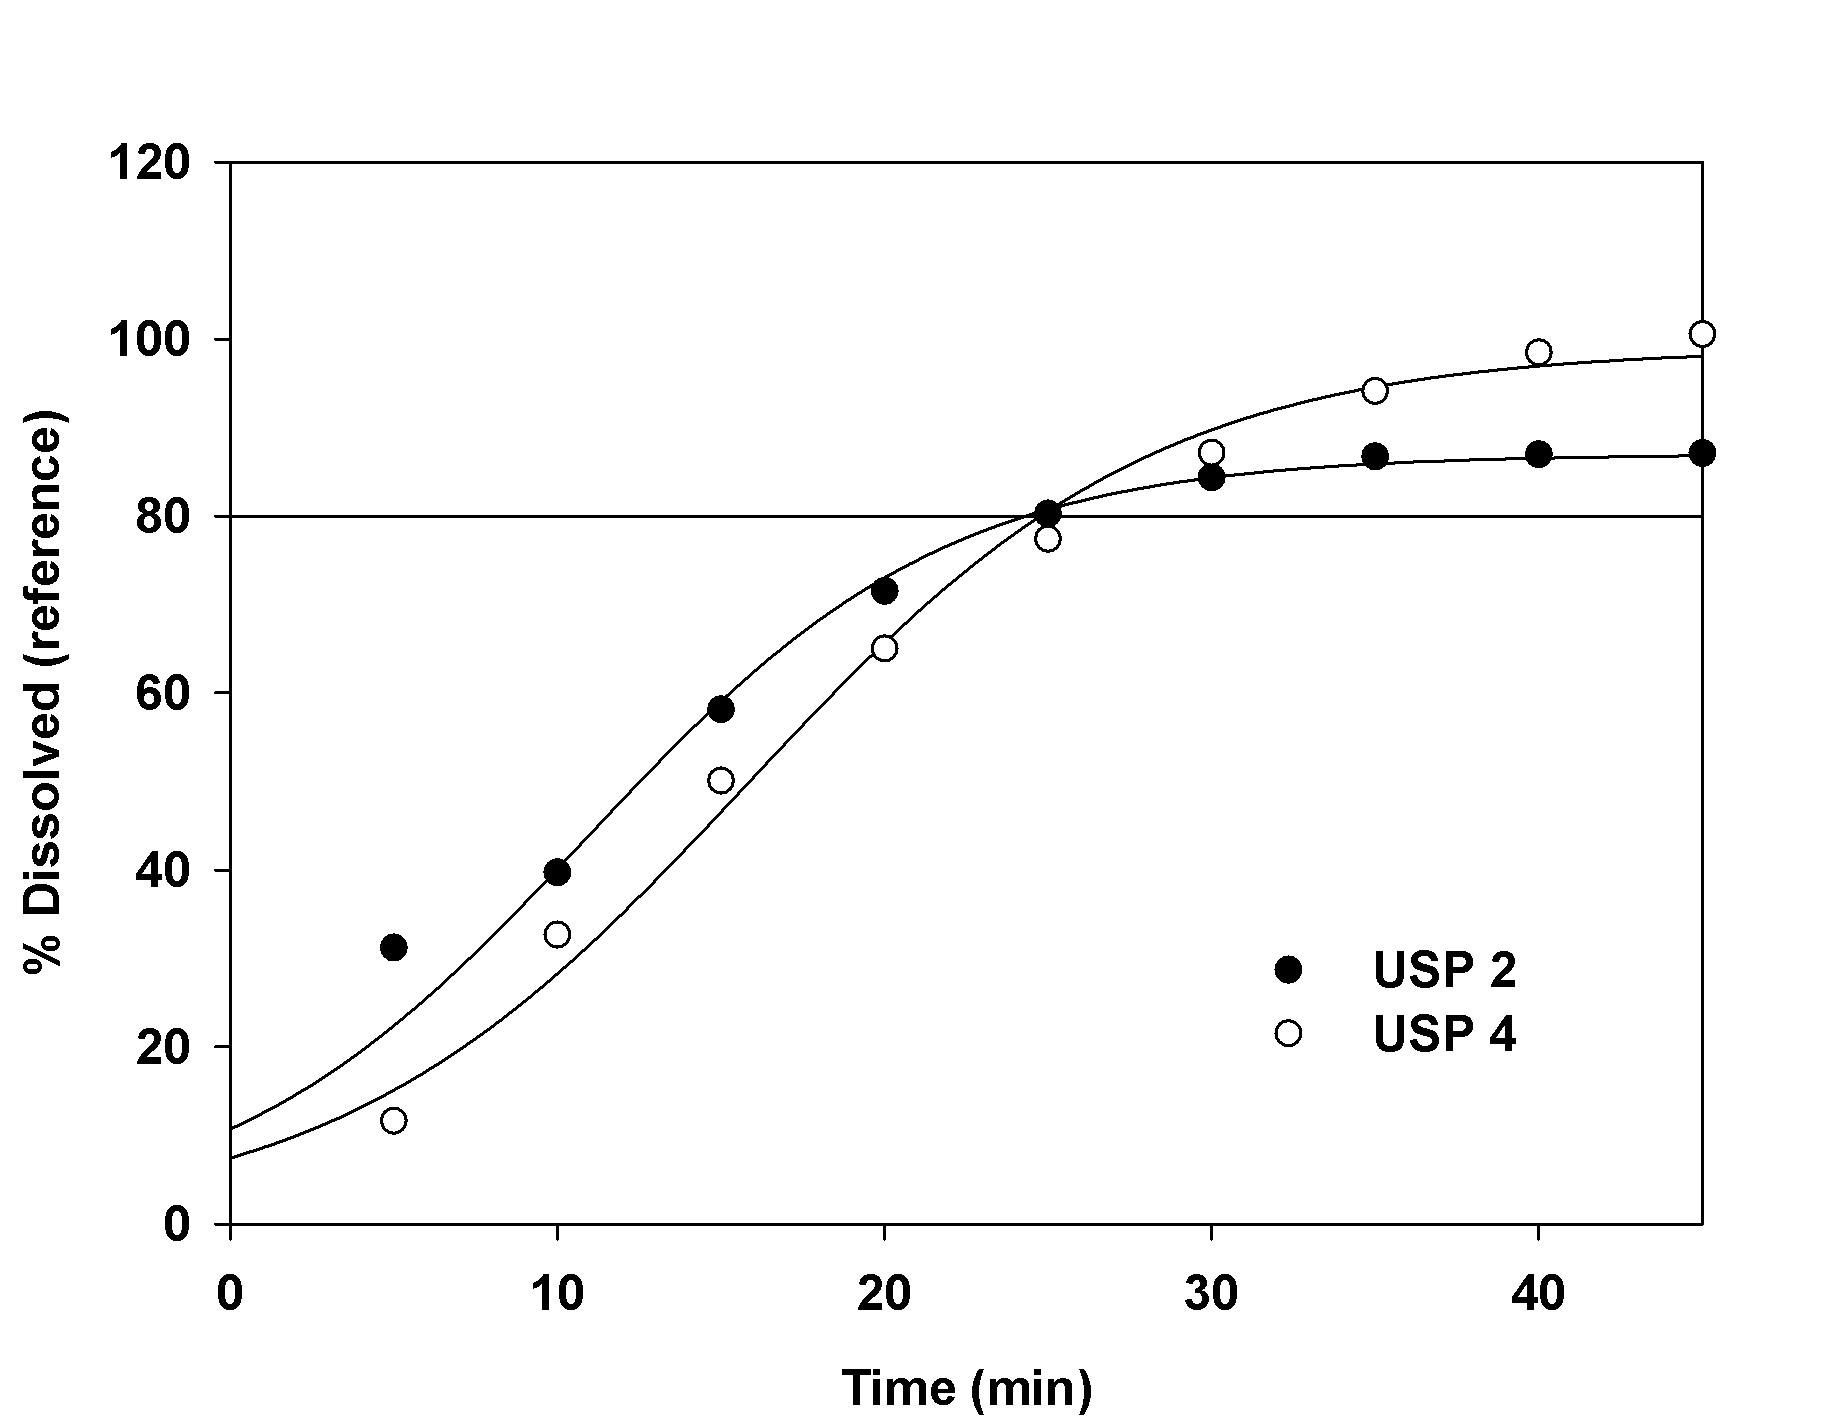 Naproxen 40 mg.doc - 3 Influence Of Dissolution Apparatus On The Naproxen Sodium Release